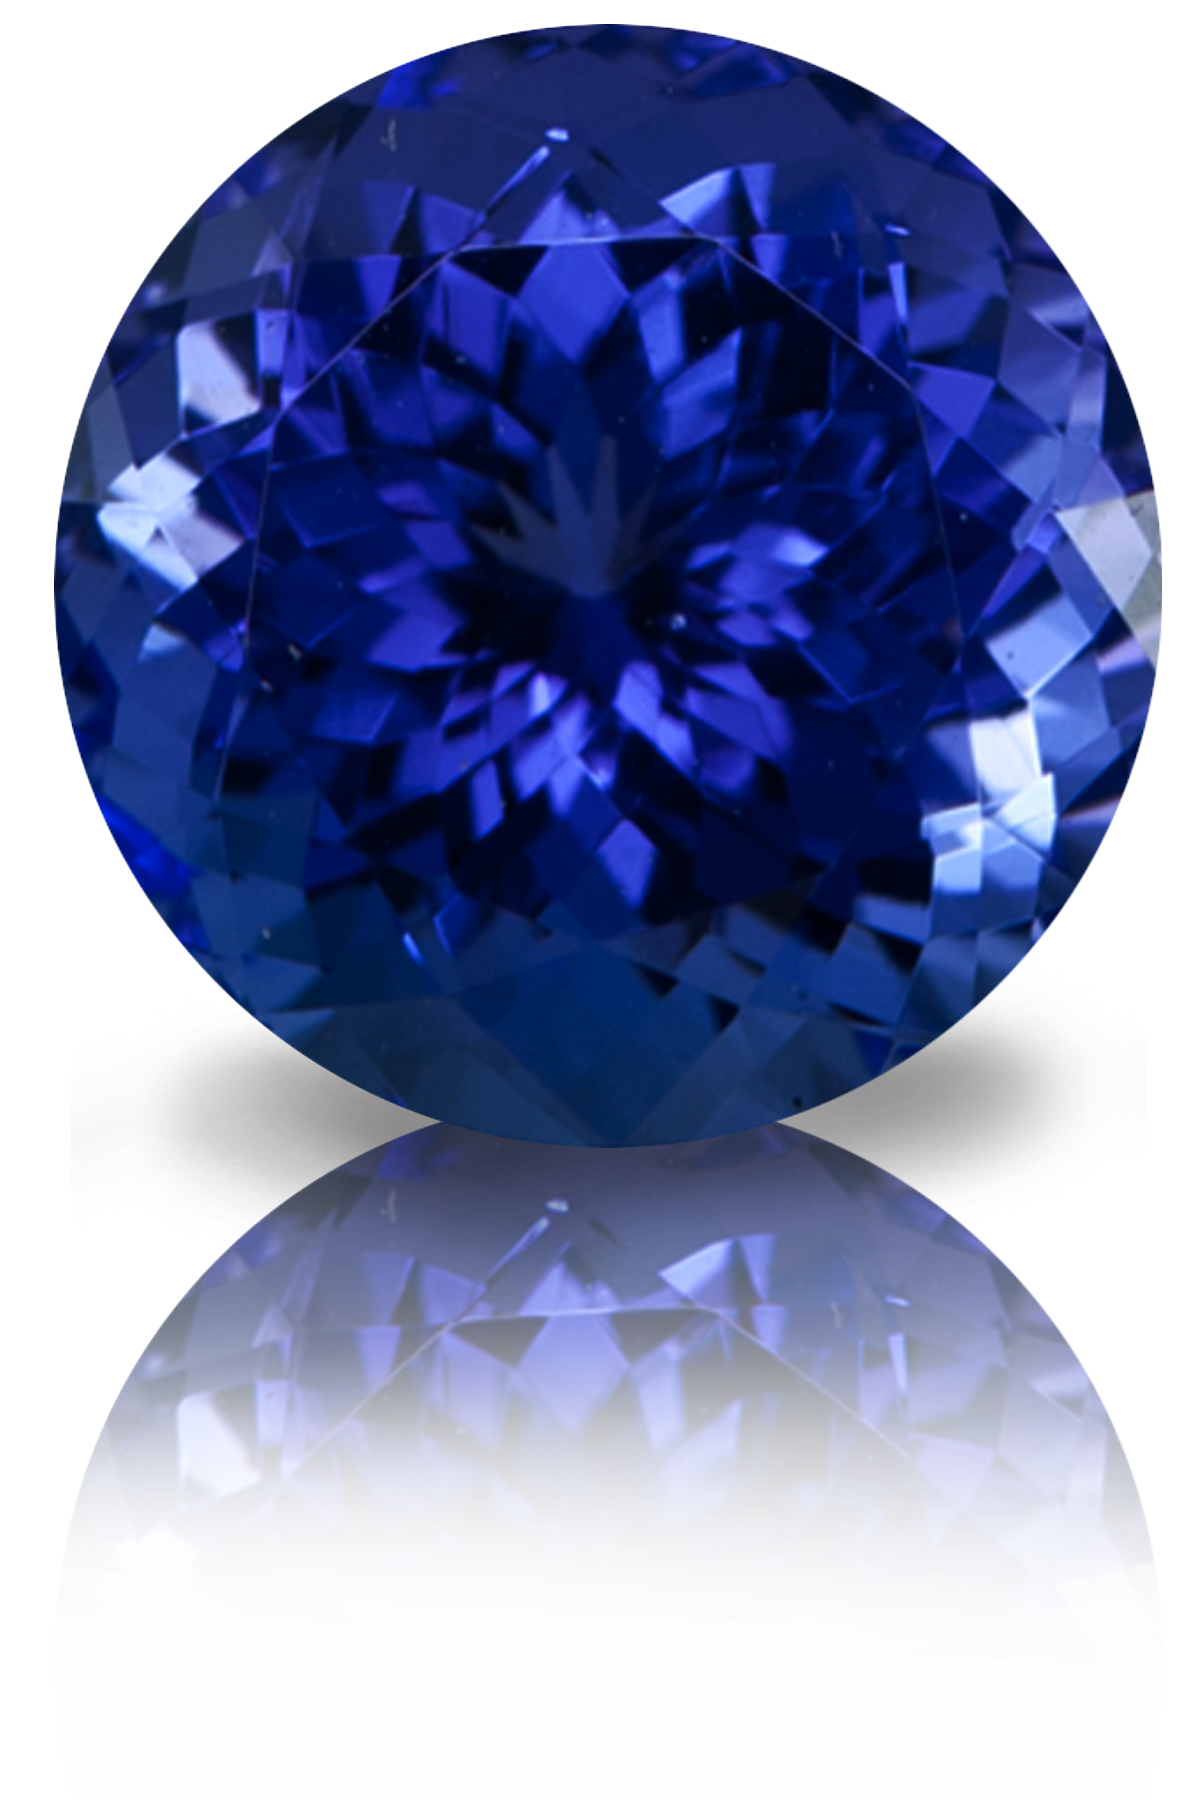 spessartites green spinels sapphires gemstones and alexandrite wholesale tanzanite from gems scapolites gemstone emeralds rubies tsavorite tourmalines garnets retail bargain prices source